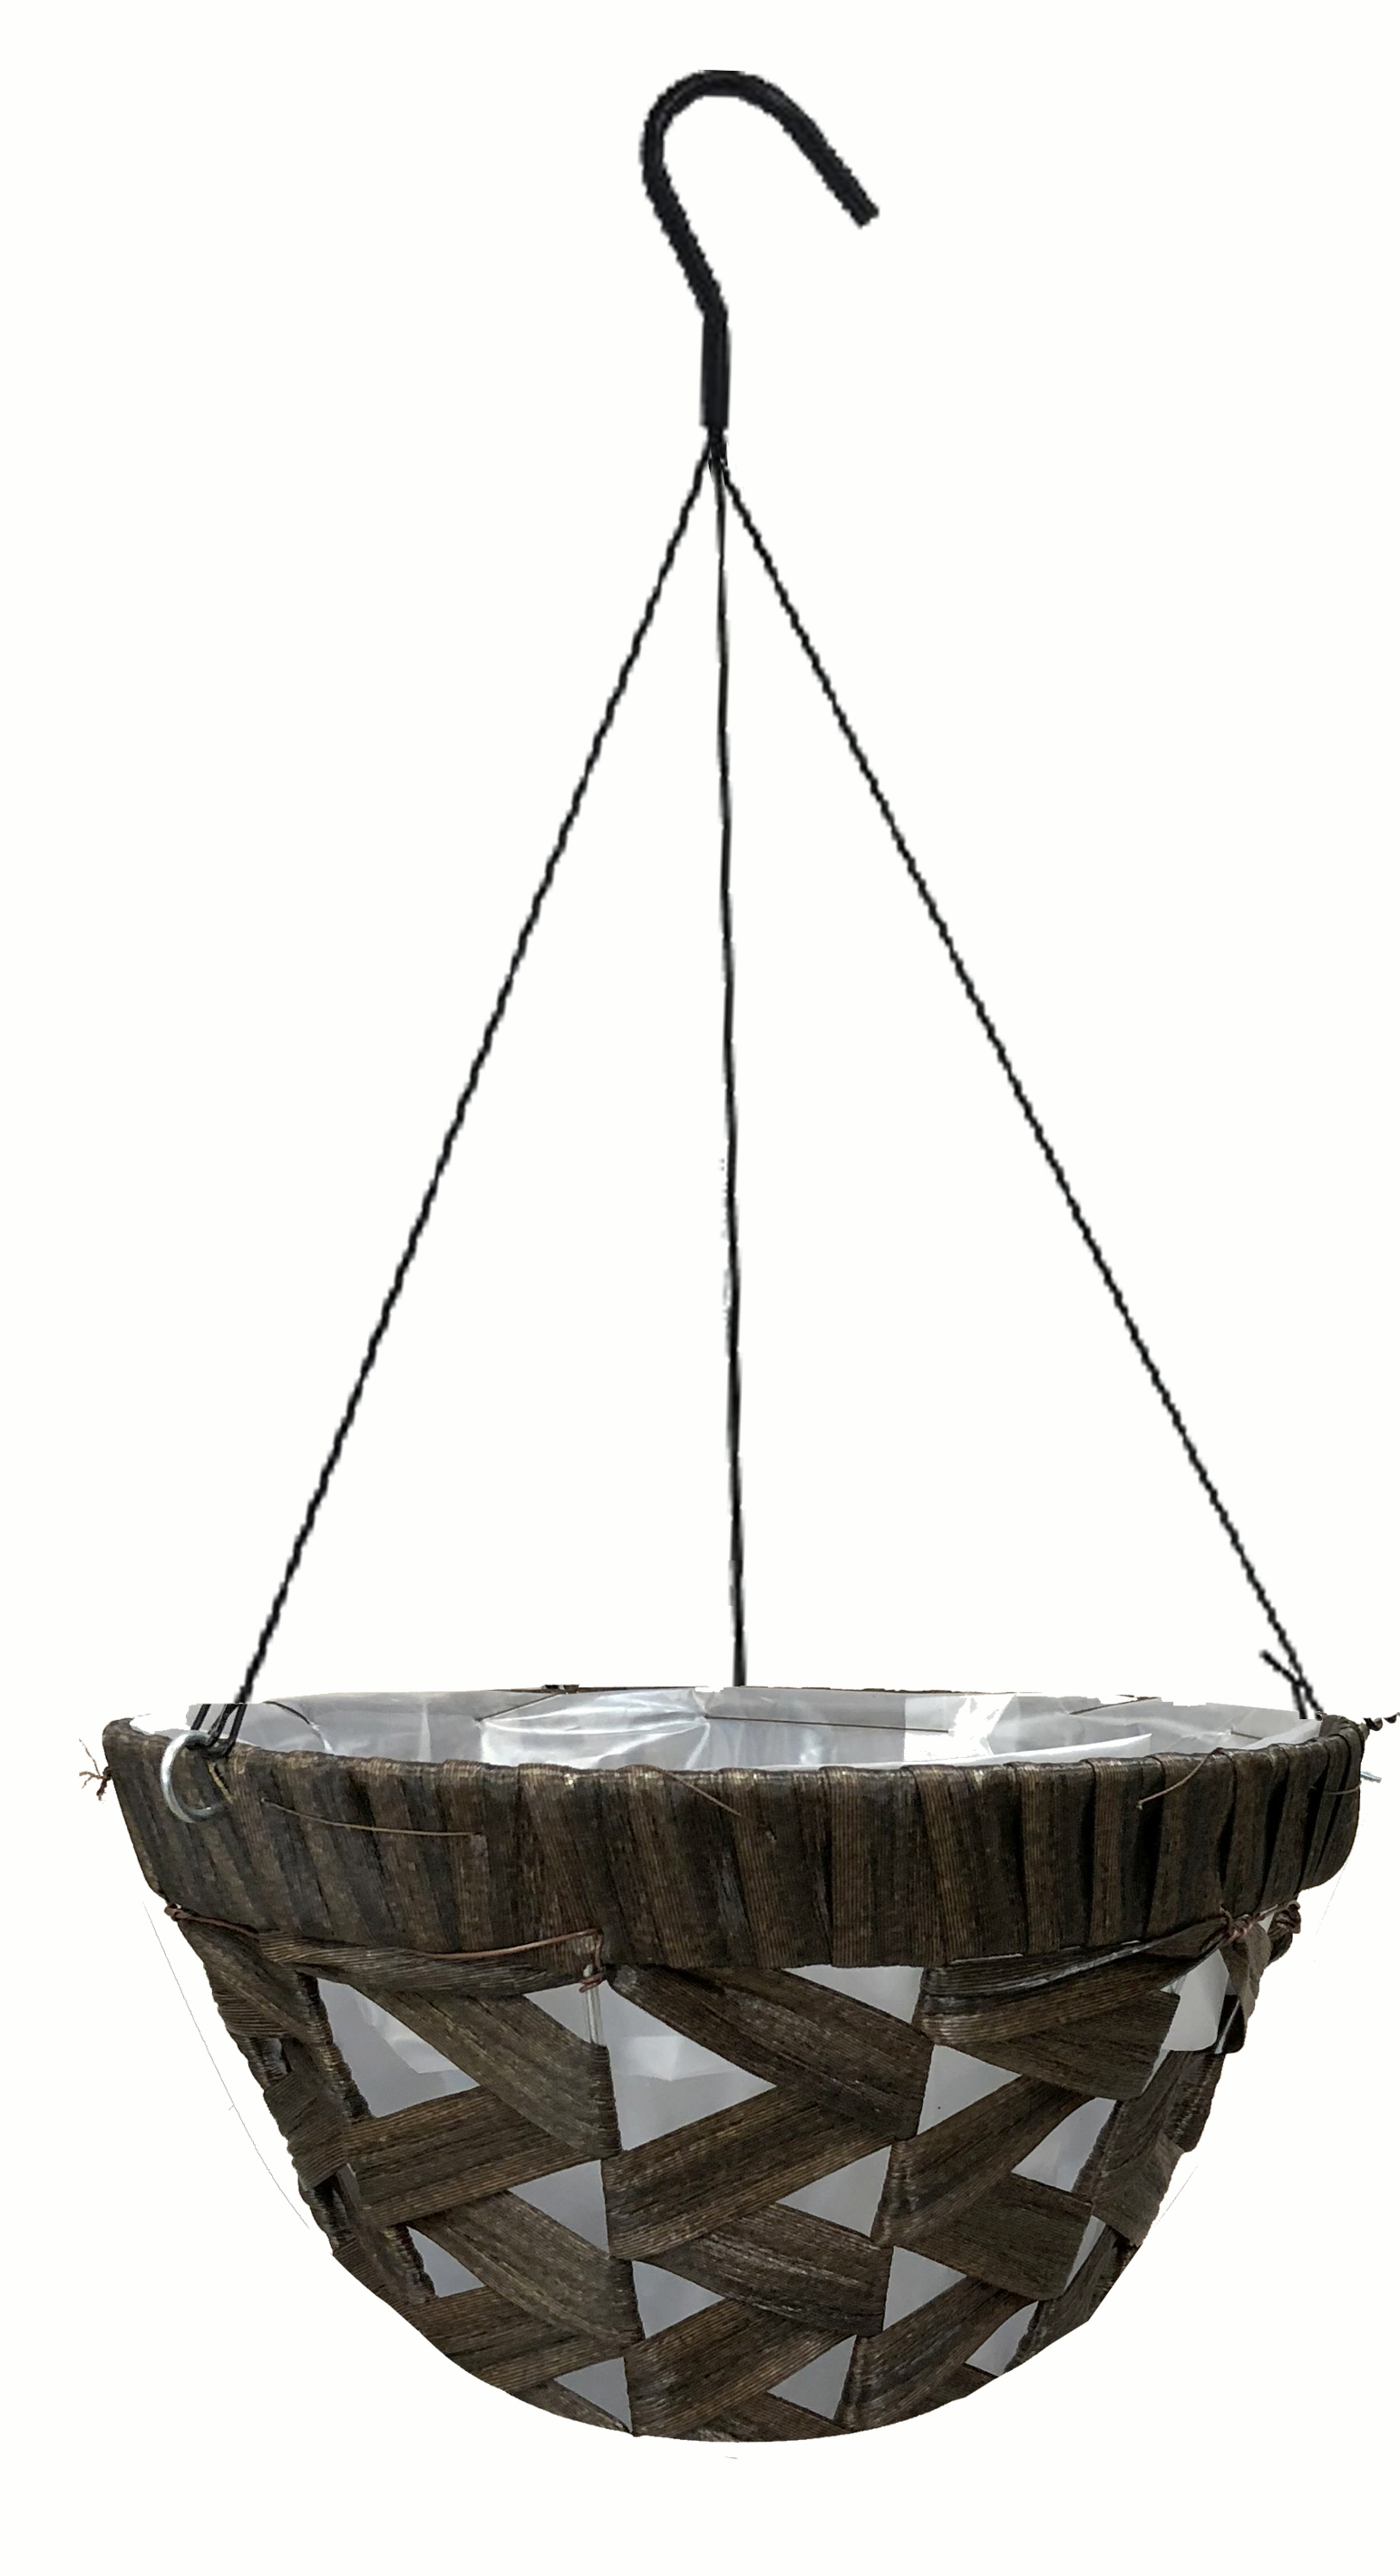 black coffee wicker with hanger.jpg